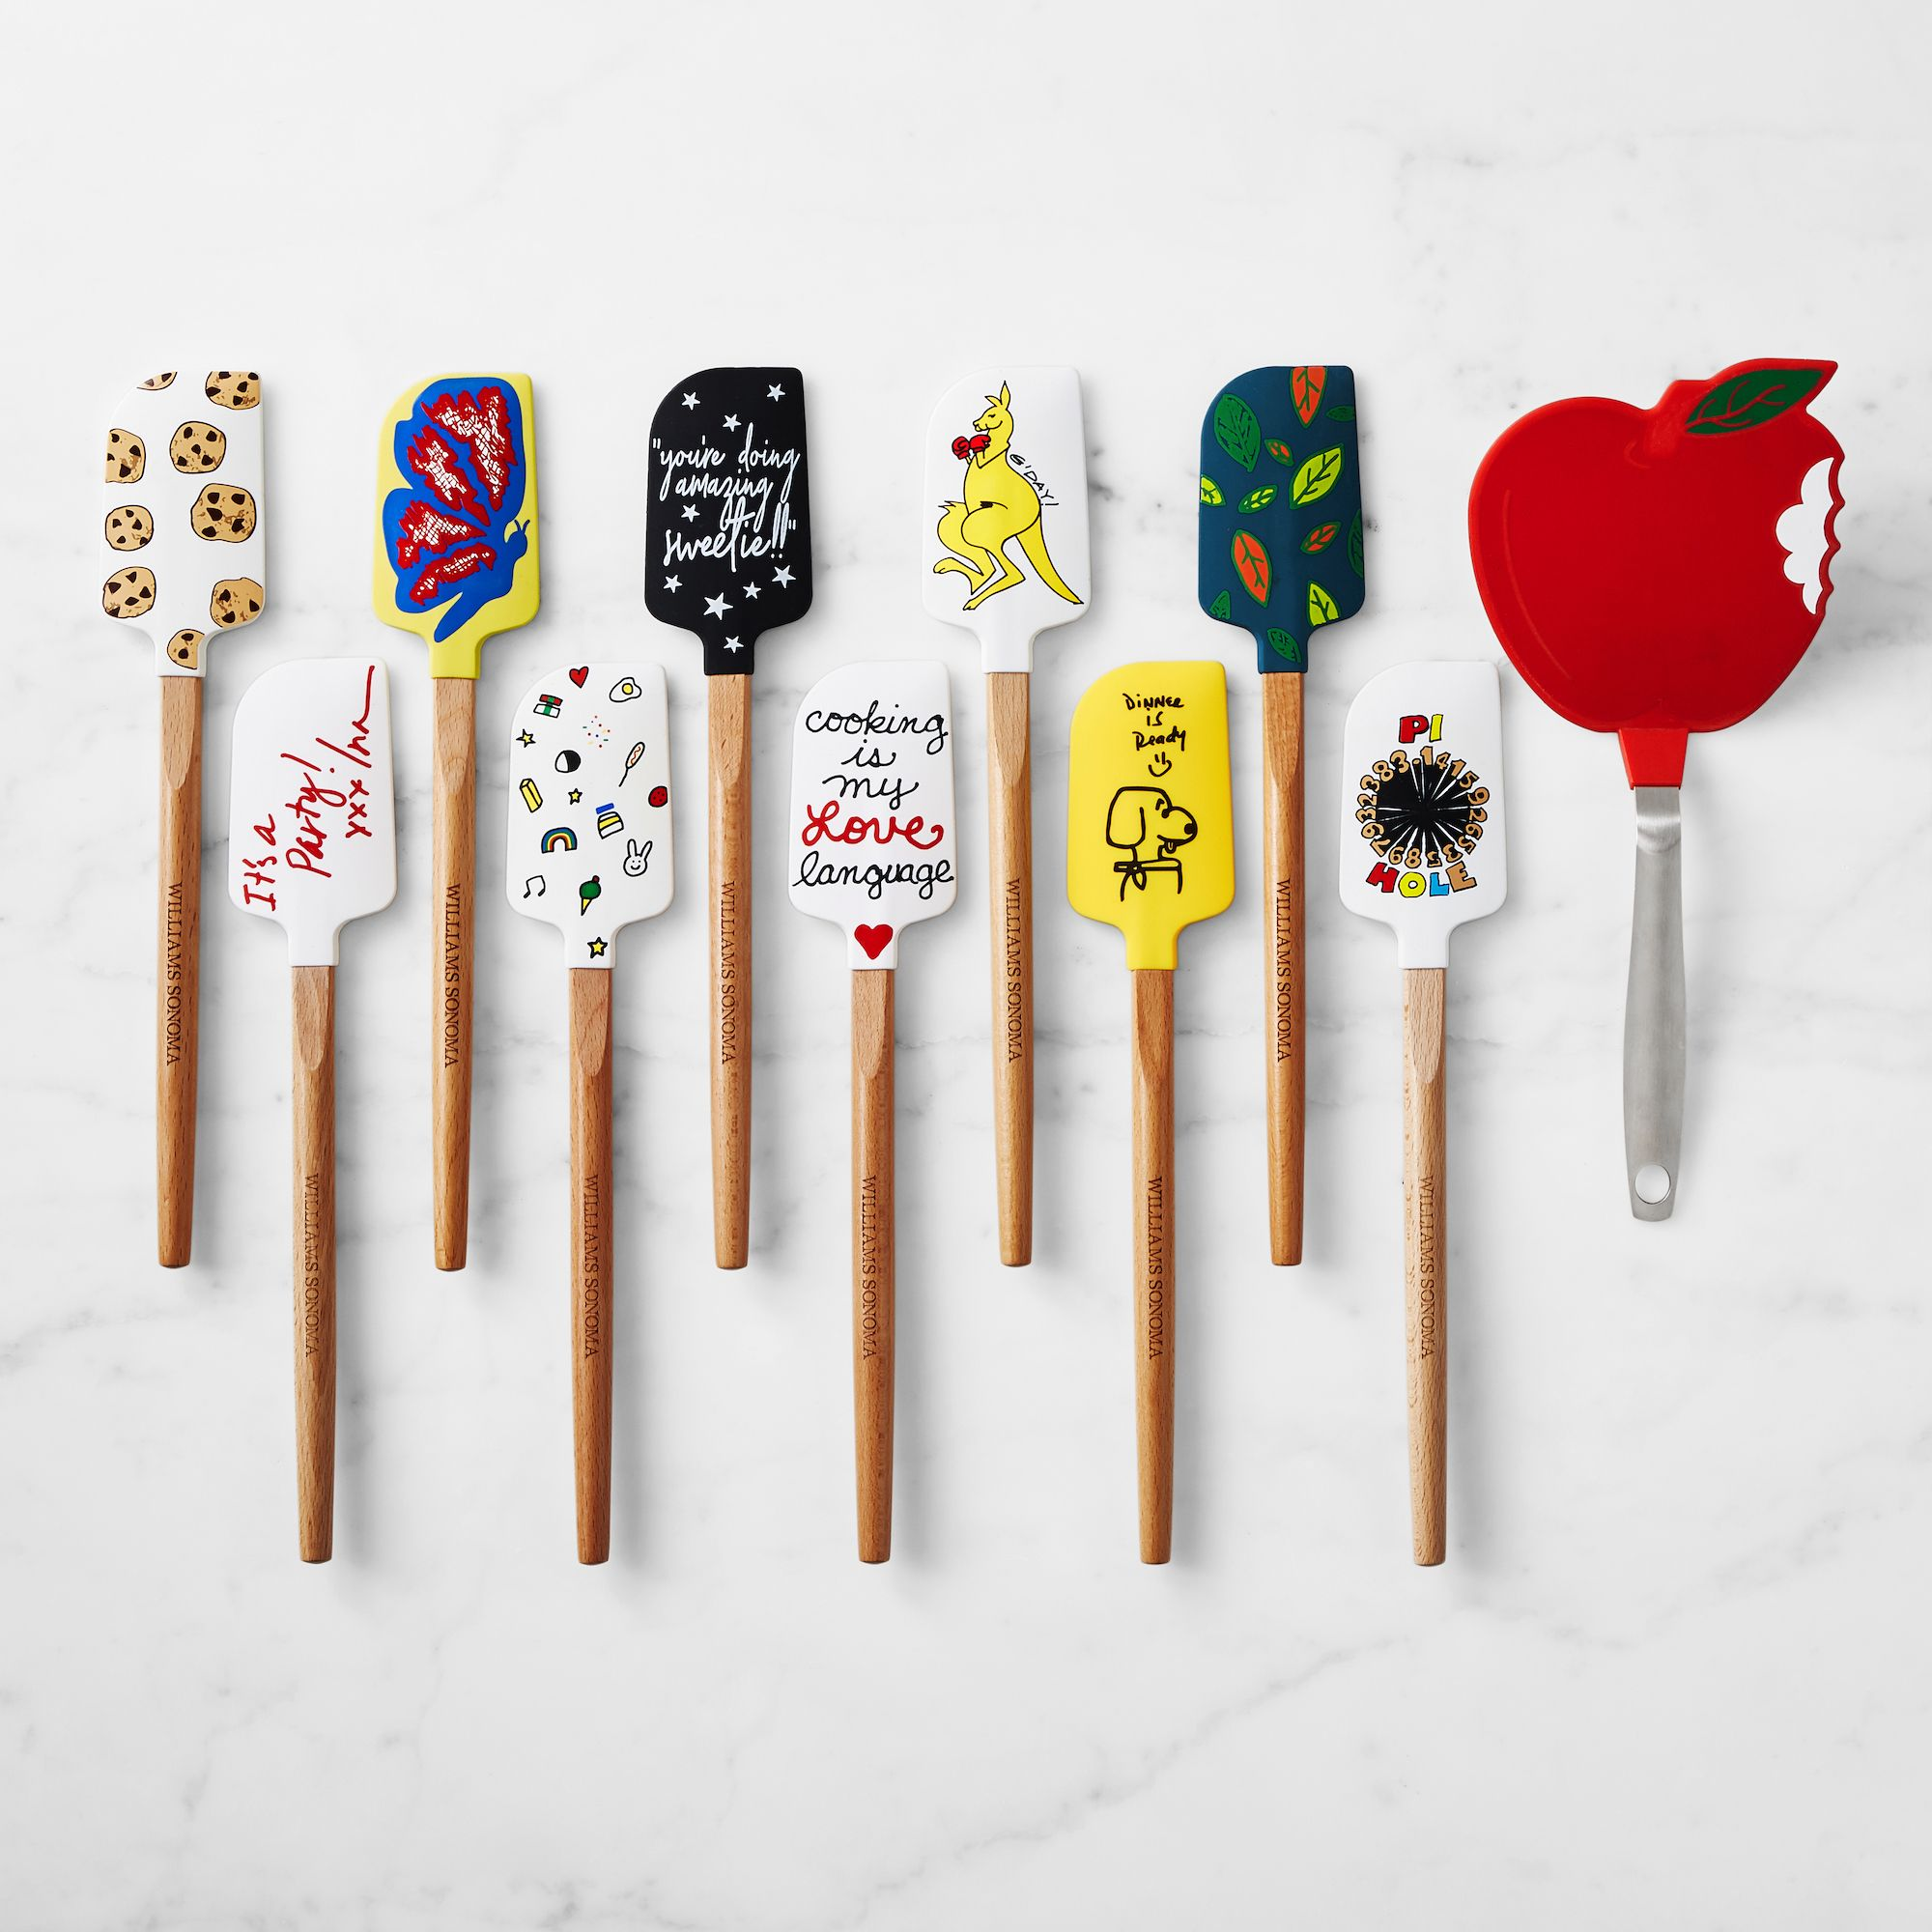 Williams Sonoma Released A Line Of Spatulas Designed By Celebrities Like Dolly Parton And Ina Garten